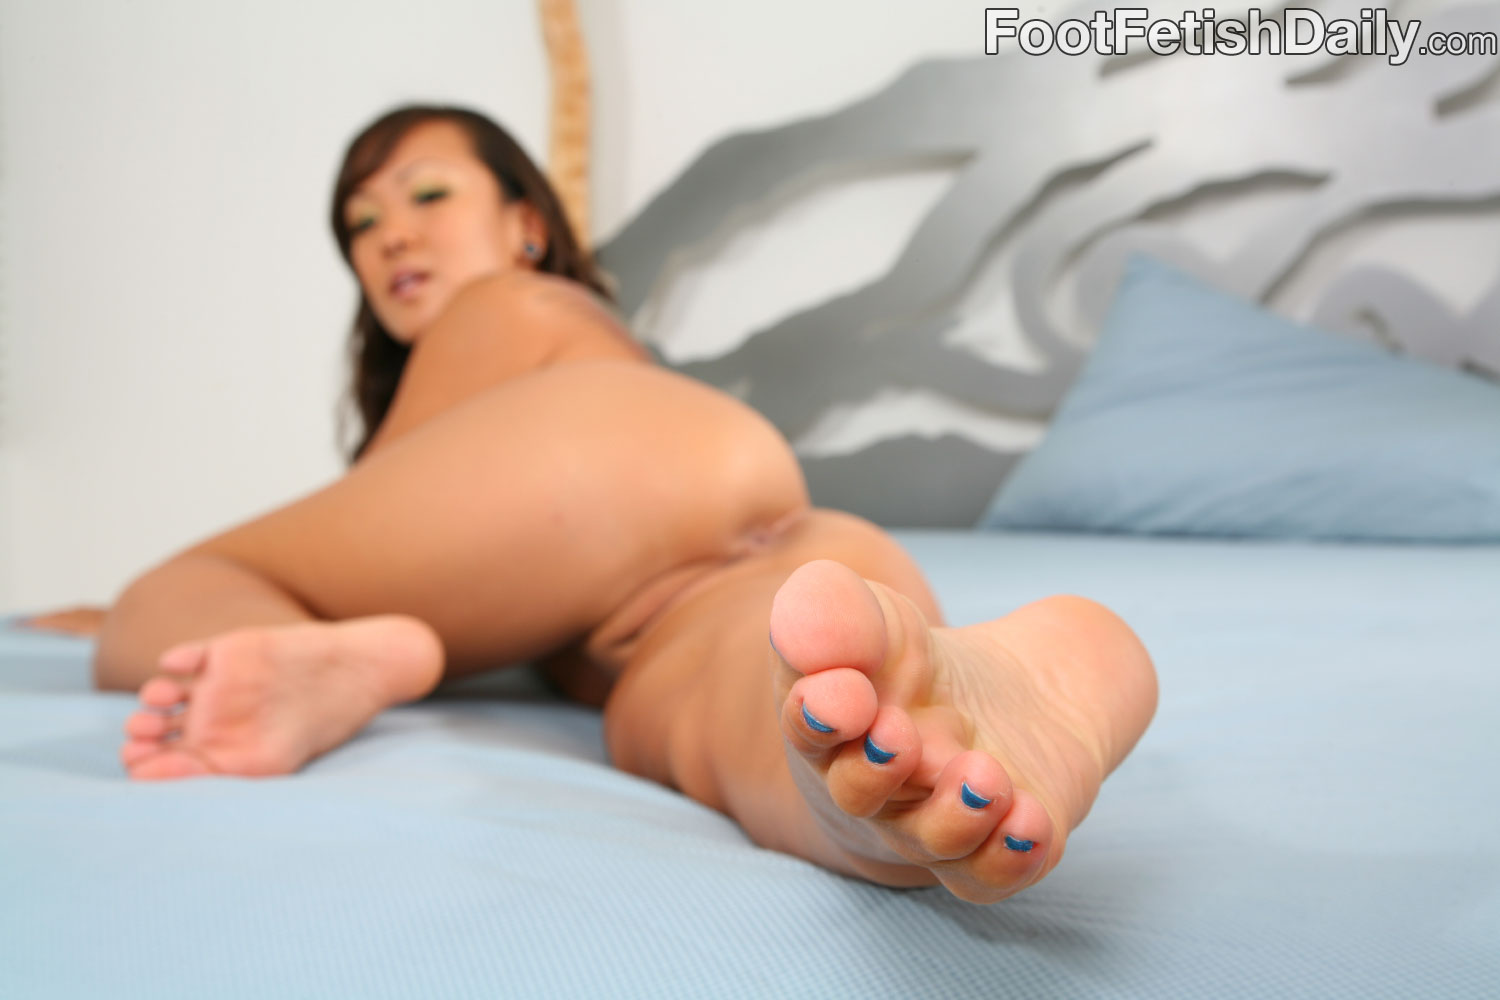 With female asiian foot fetish